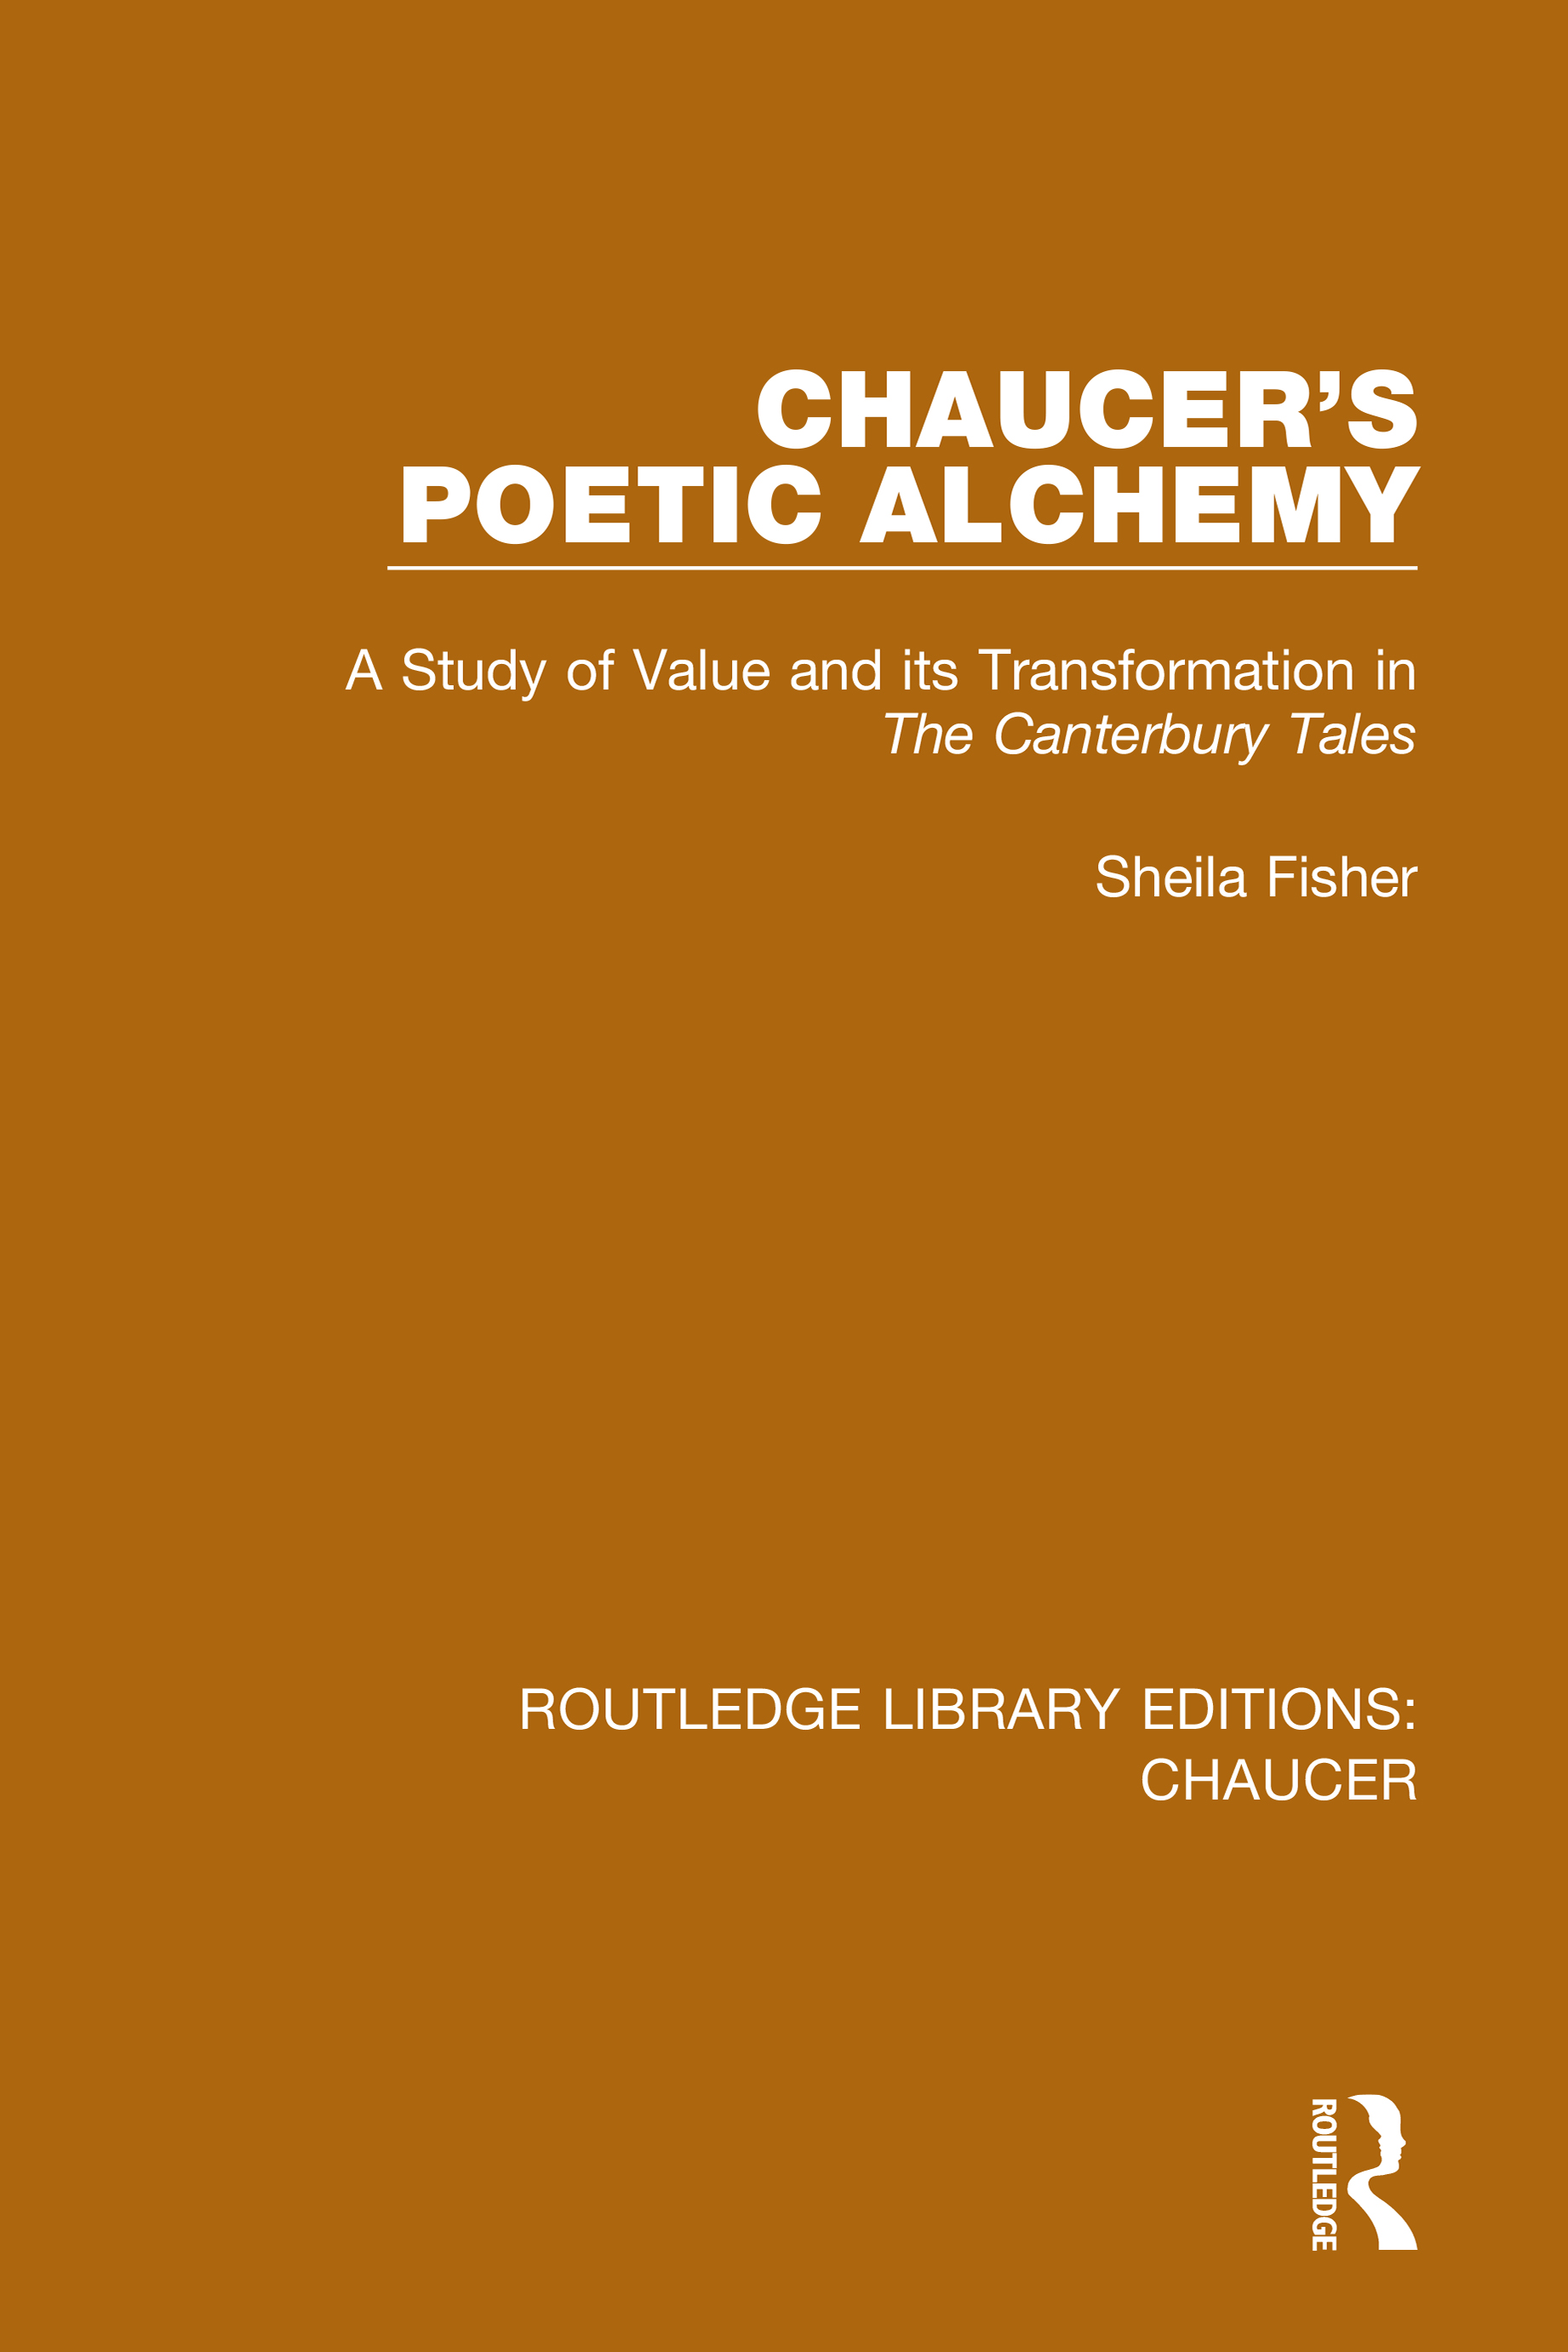 Chaucer's Poetic Alchemy